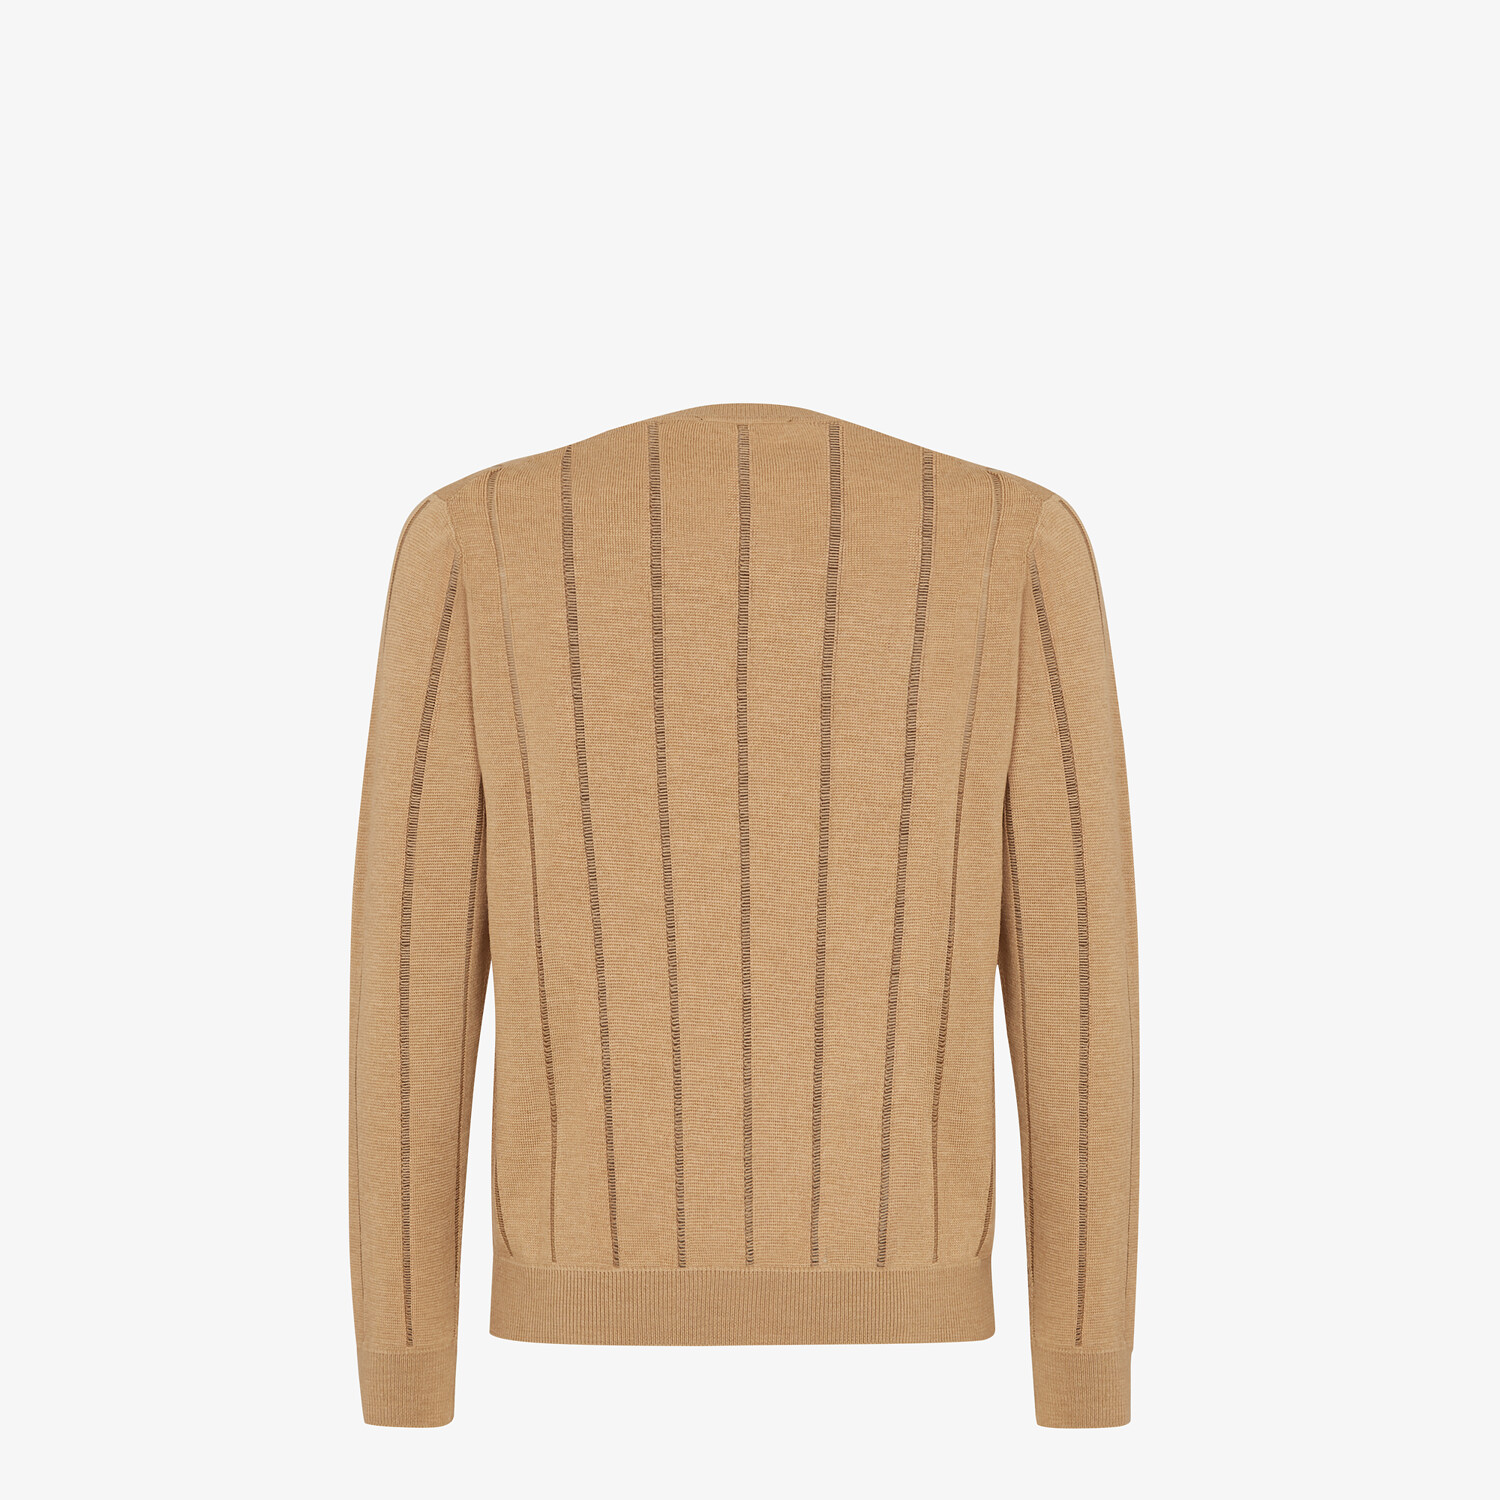 FENDI SWEATER - Brown wool sweater - view 2 detail